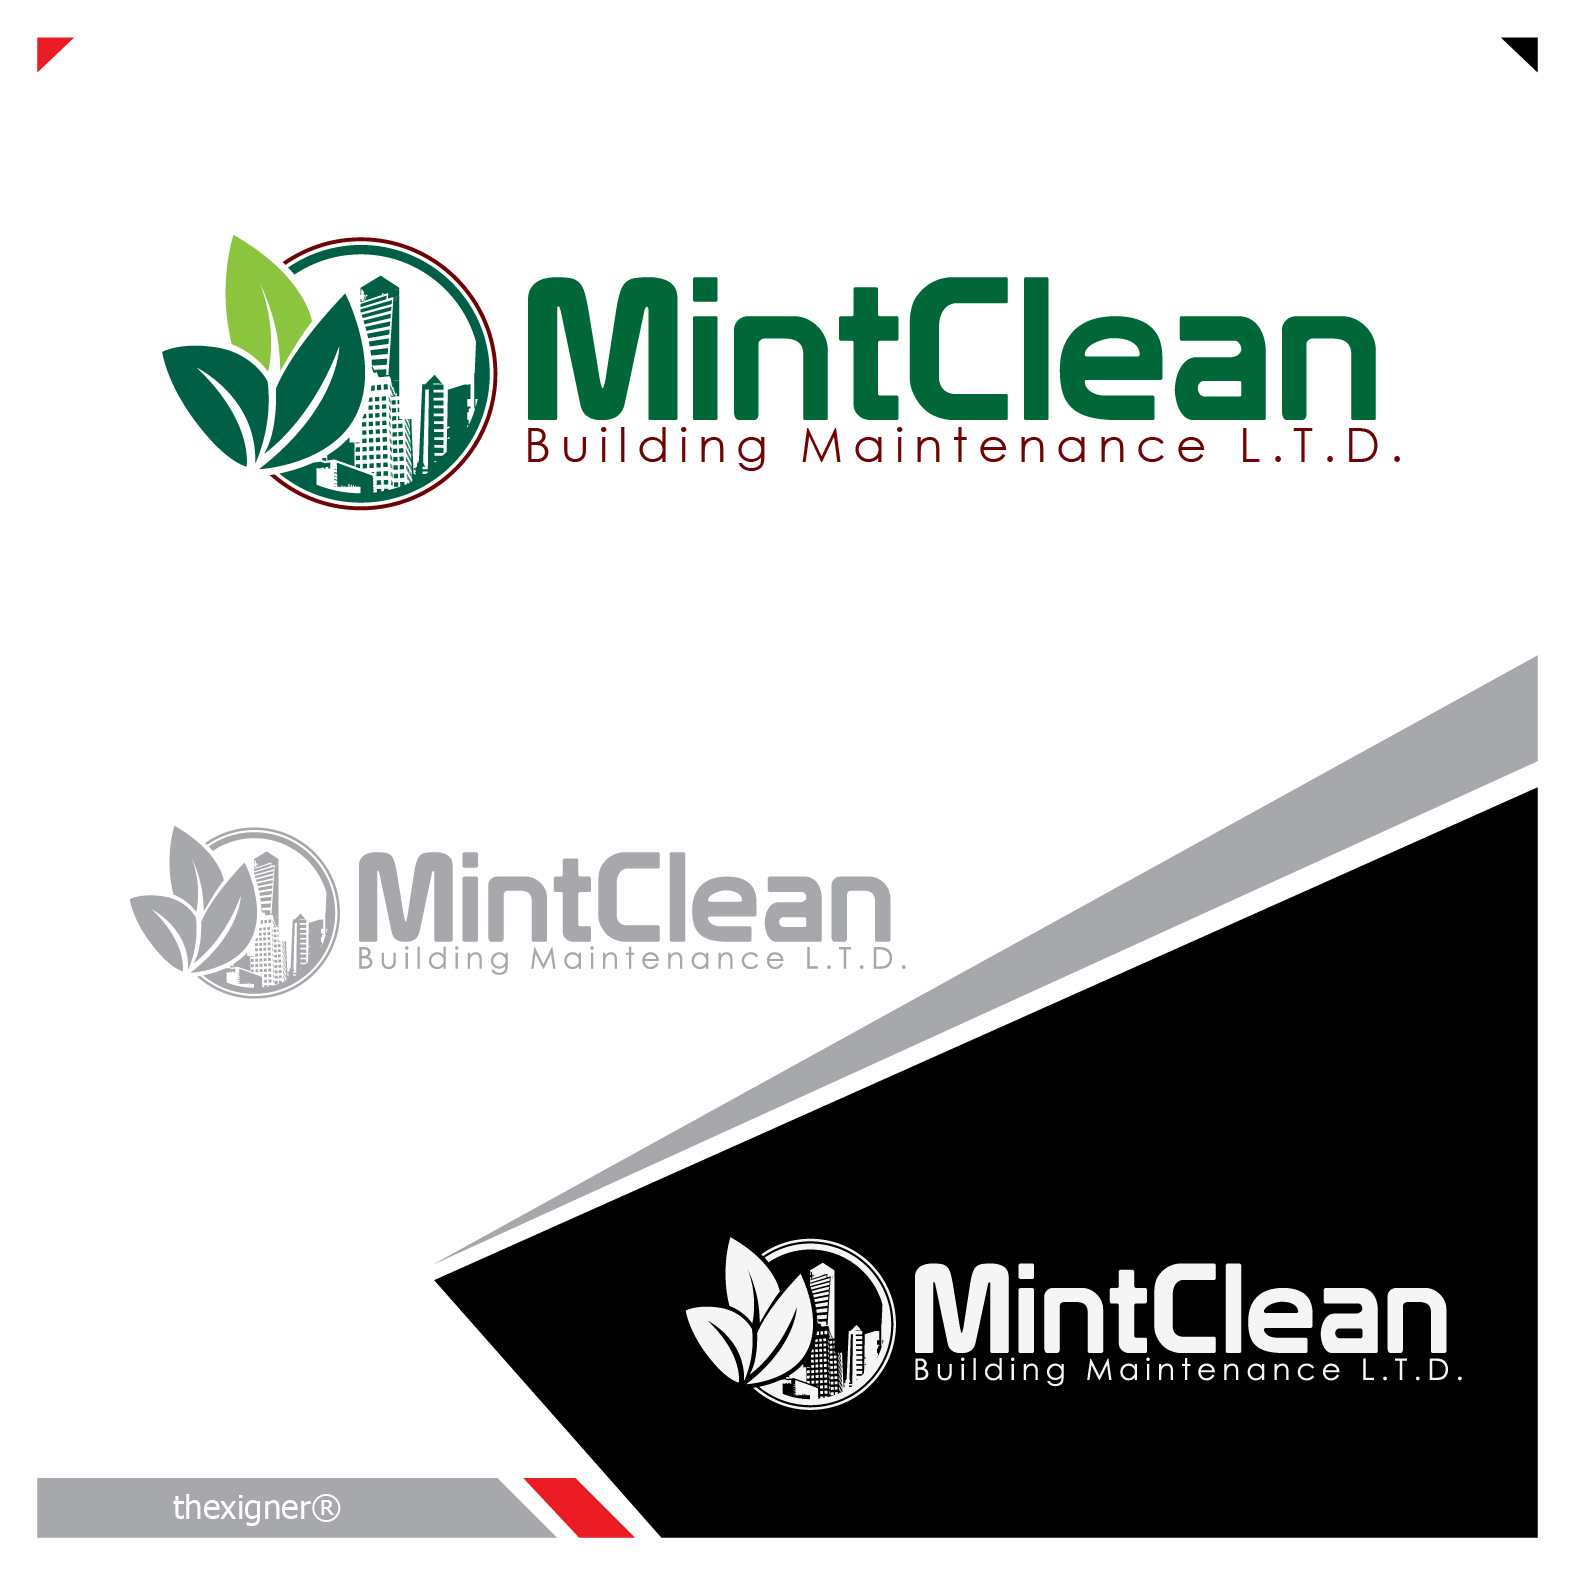 Logo Design by lagalag - Entry No. 49 in the Logo Design Contest MintClean Building Maintenance Ltd. Logo Design.